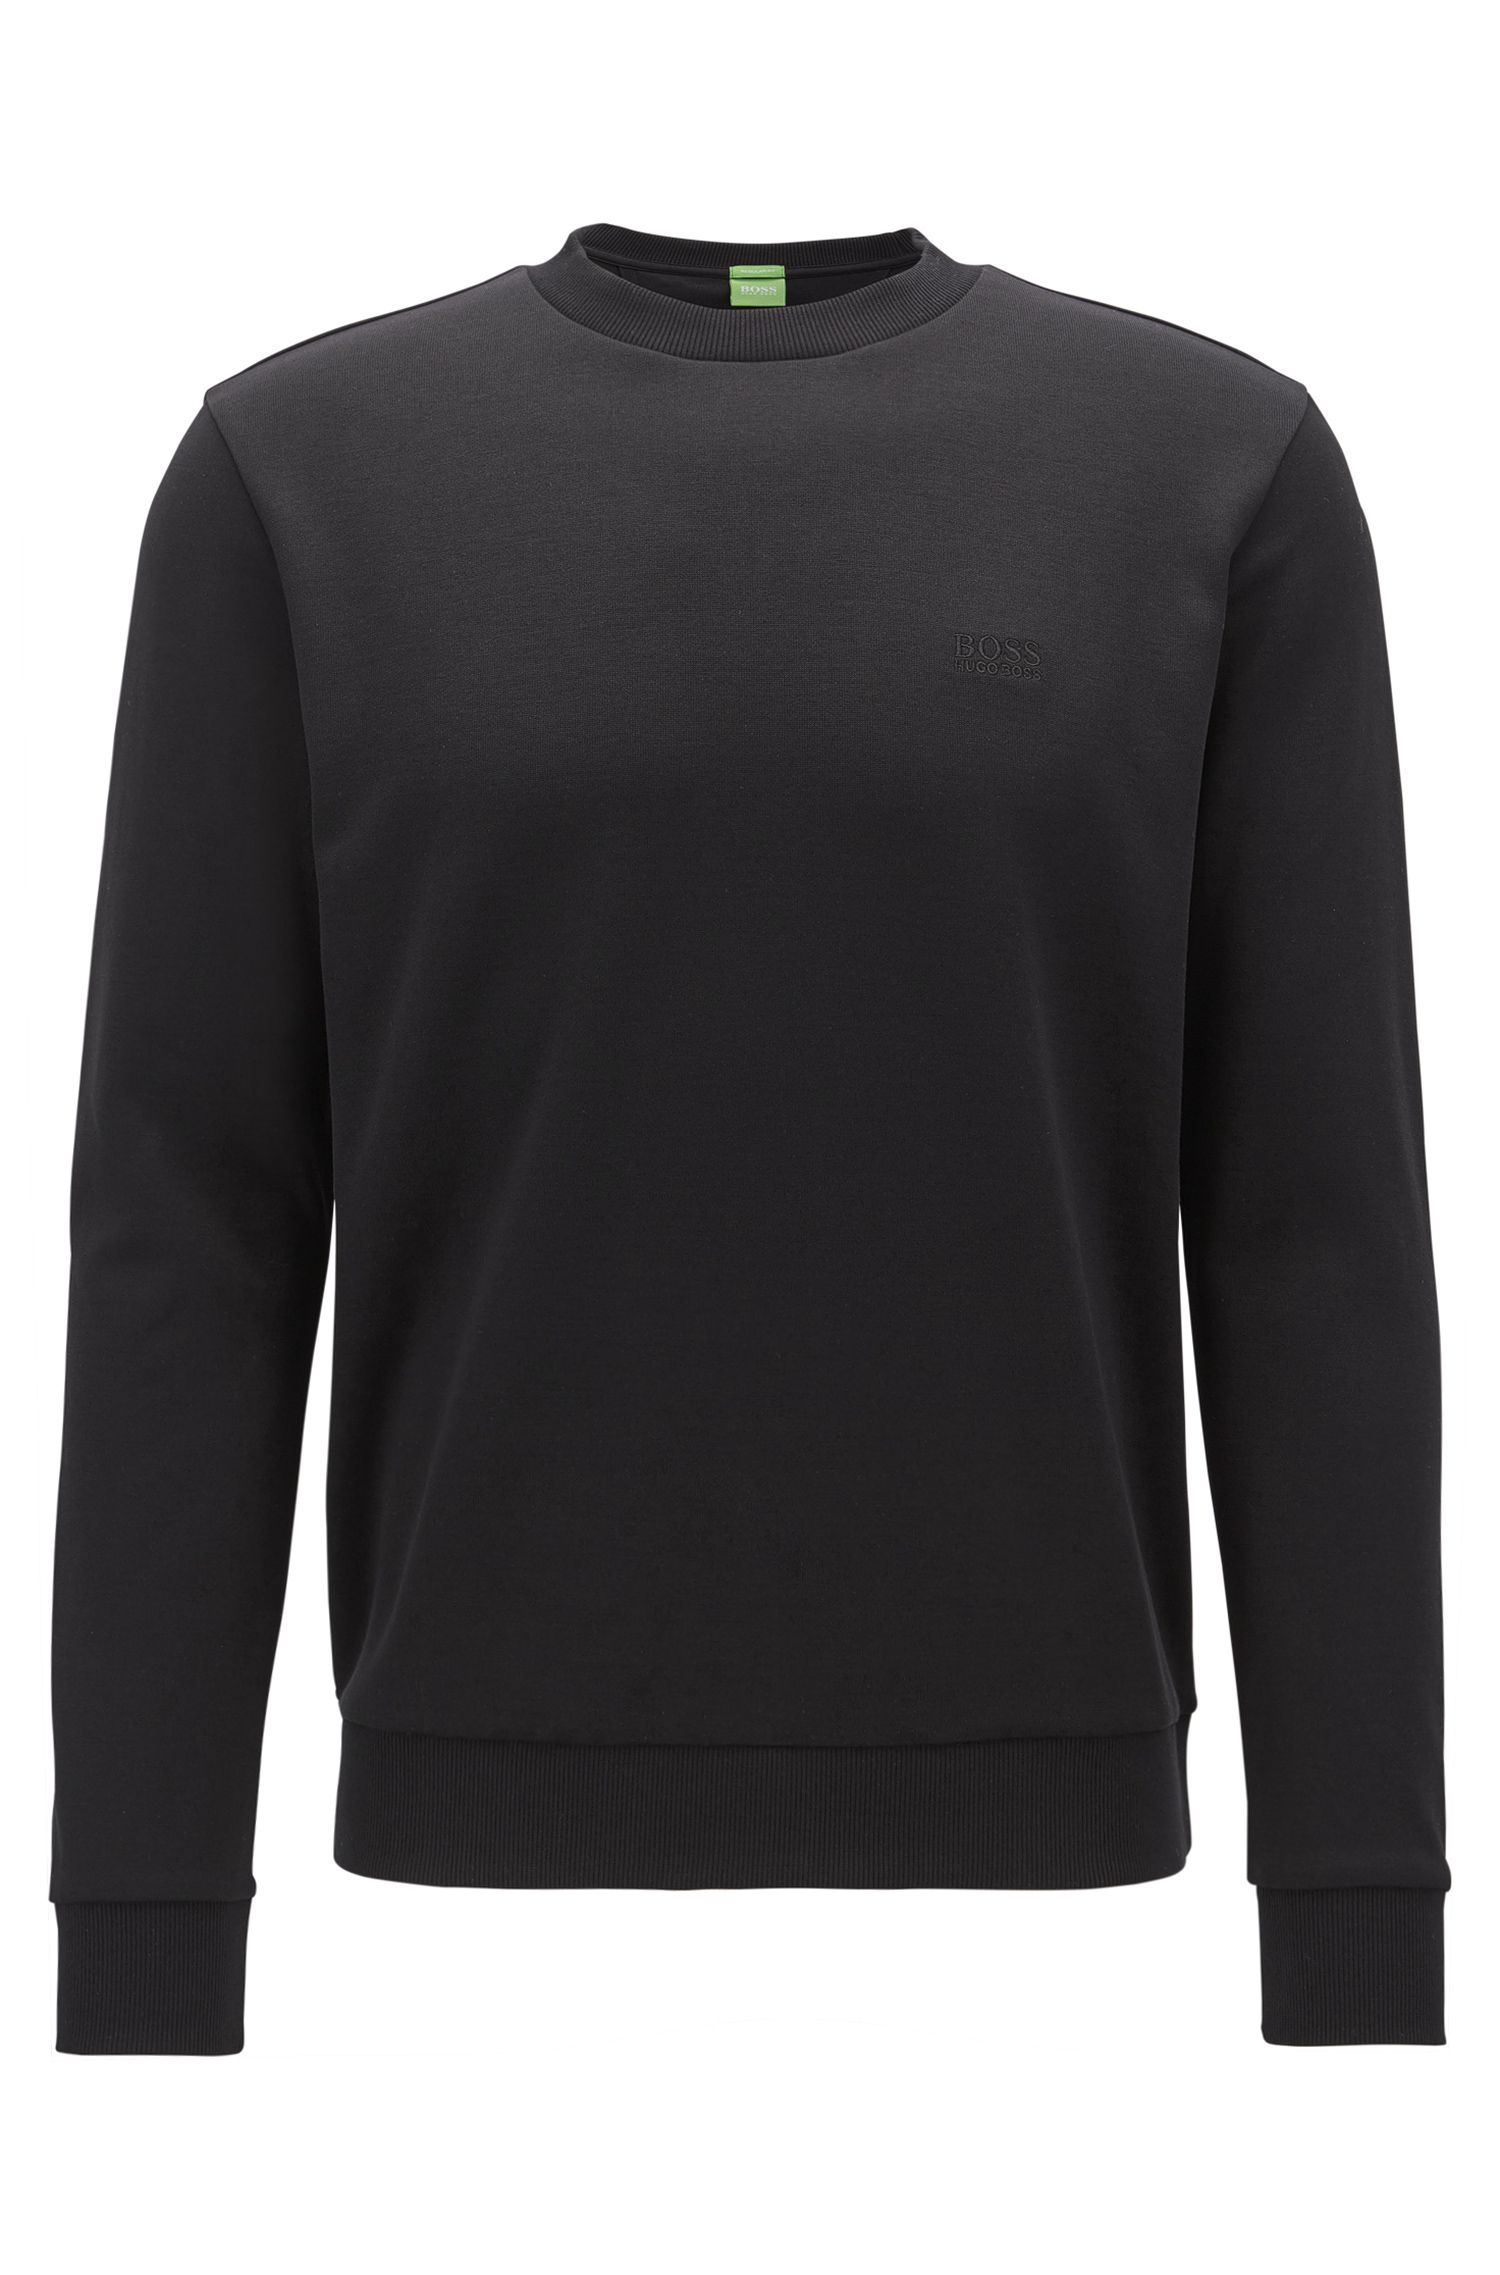 Crew-neck sweatshirt with logo embroidery